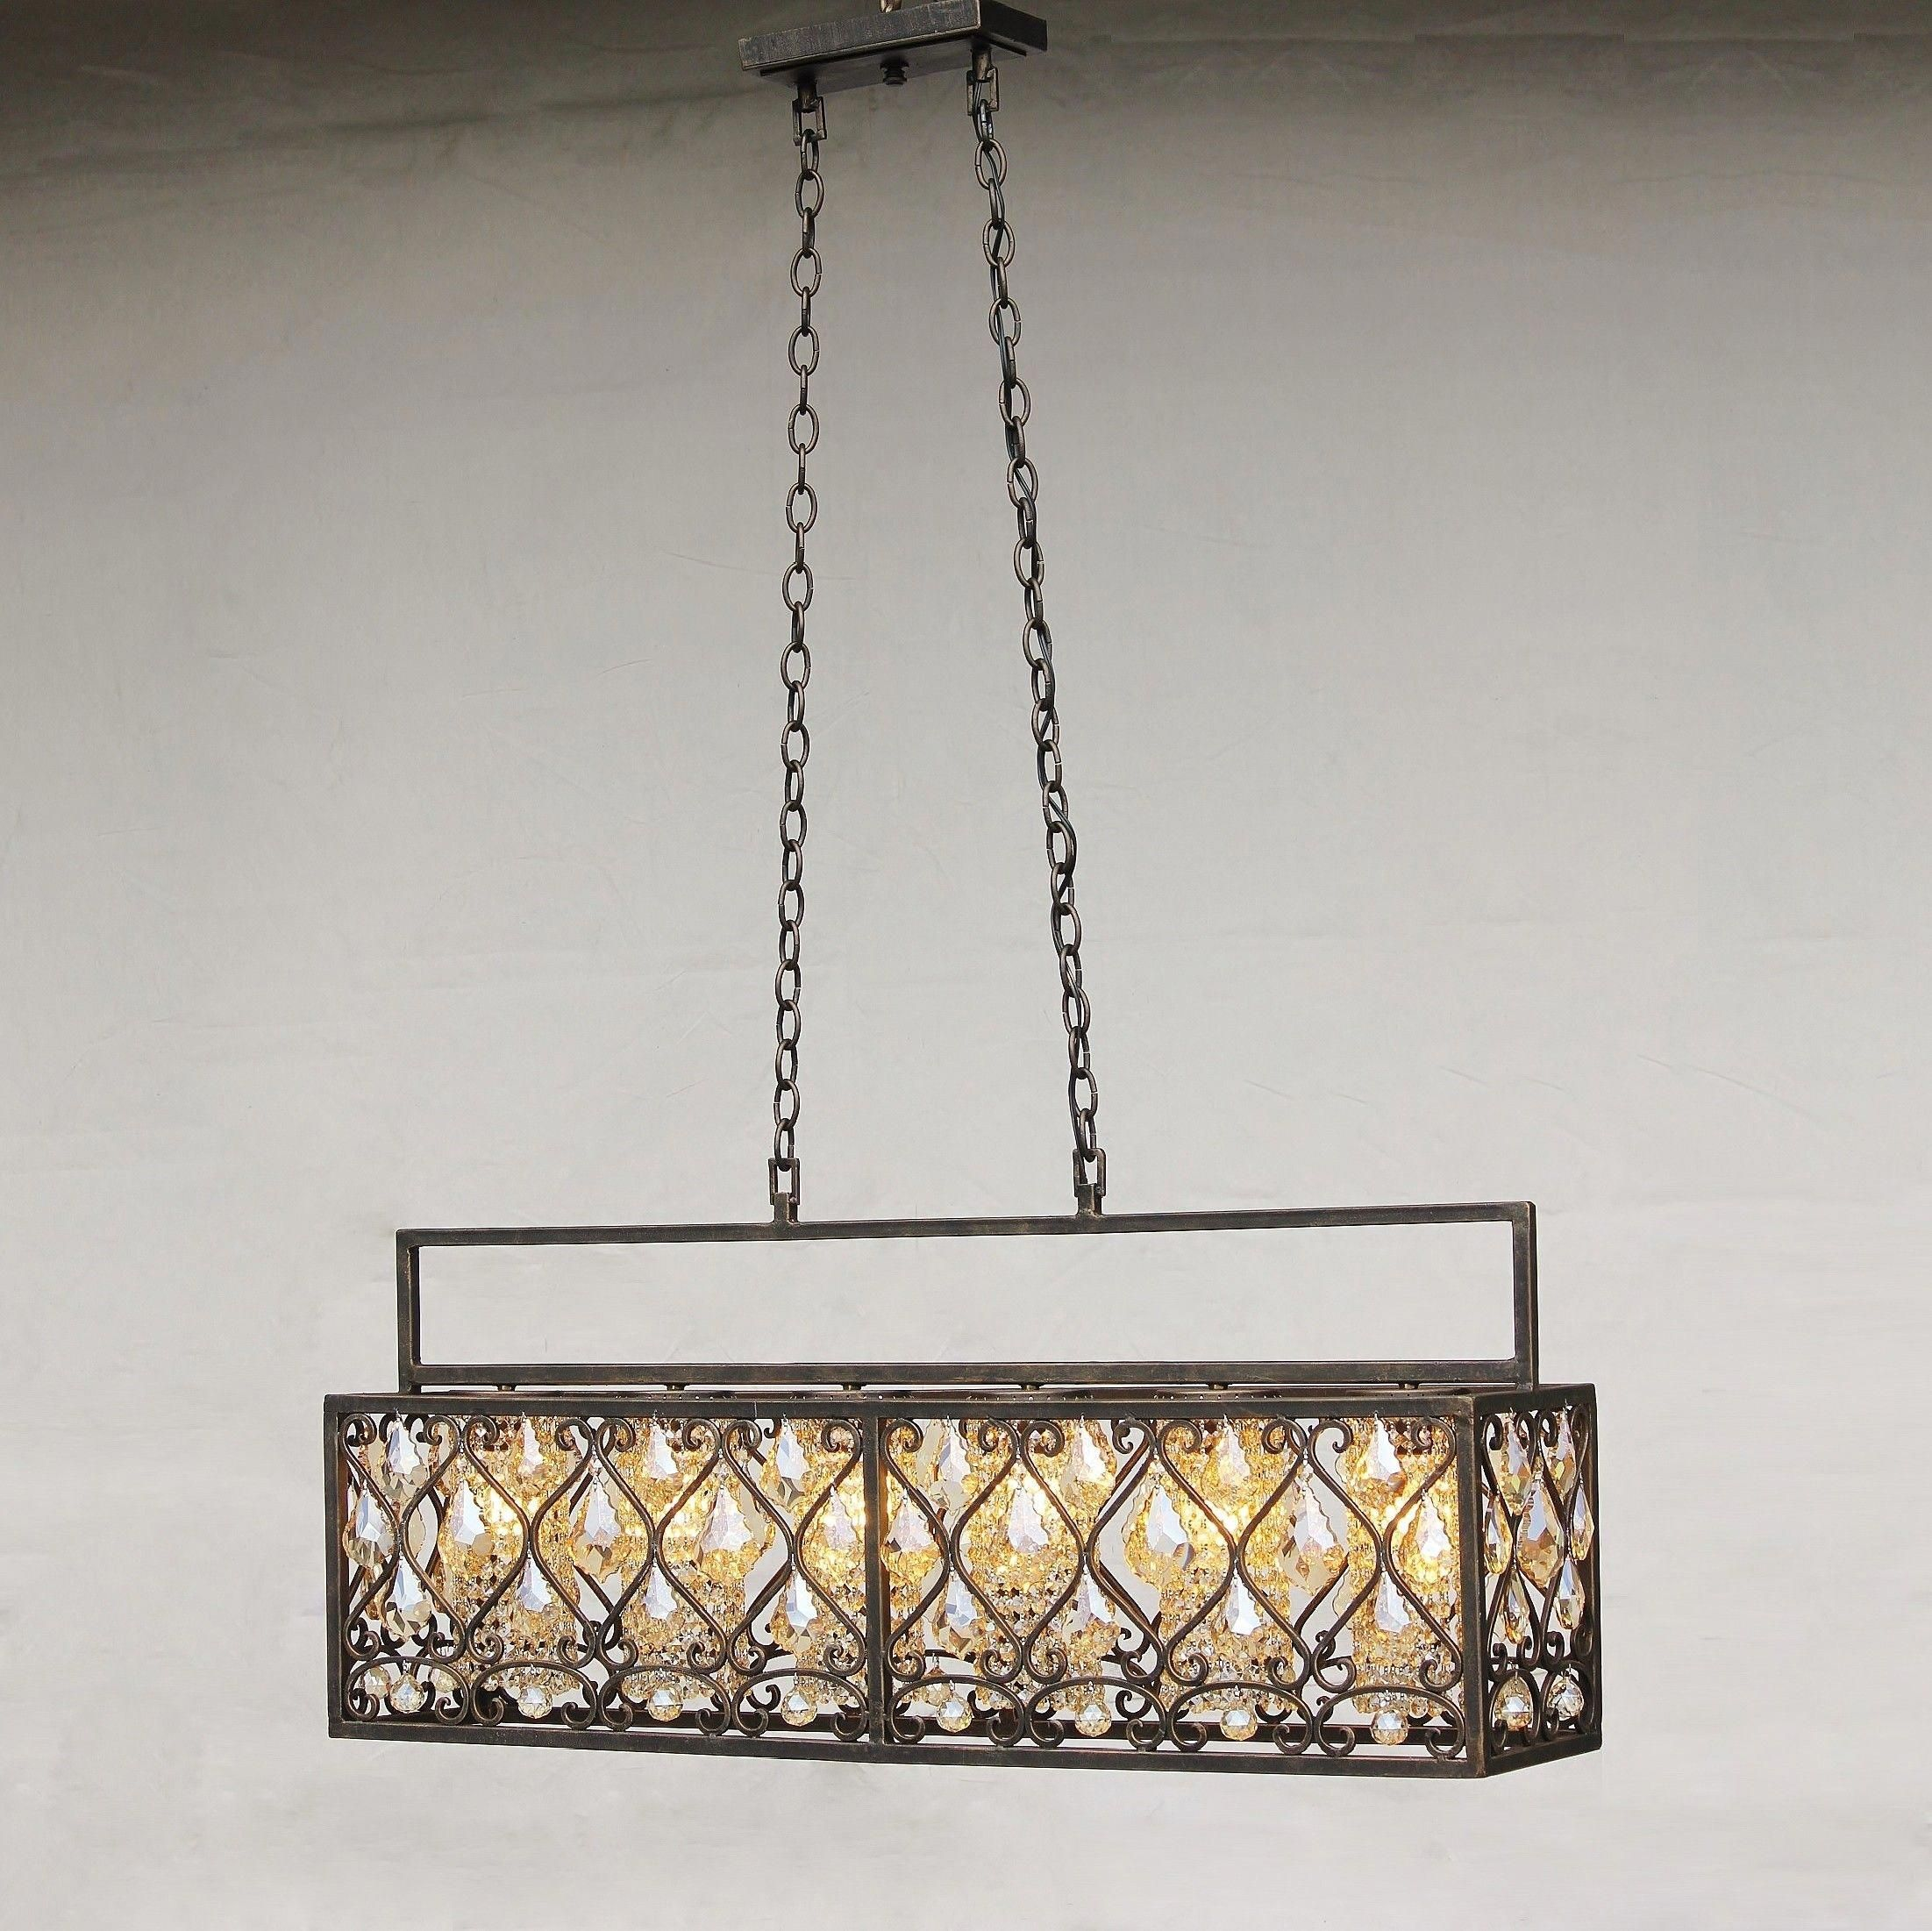 Contemporary Spanish Style Wrought Iron Chandelier Spanishstyle